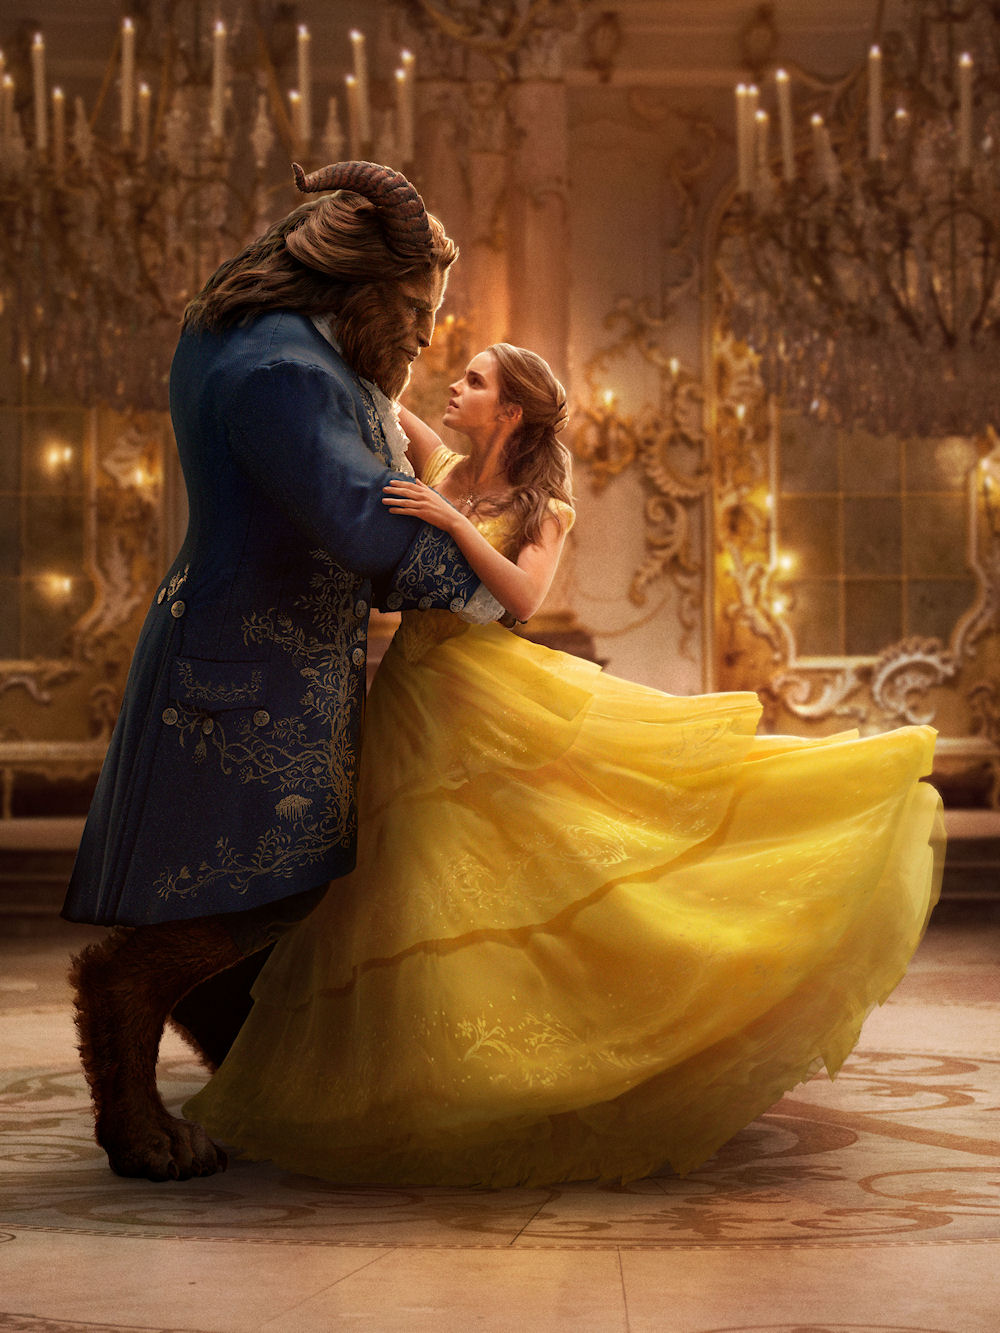 001-beauty-and-the-beast.jpg